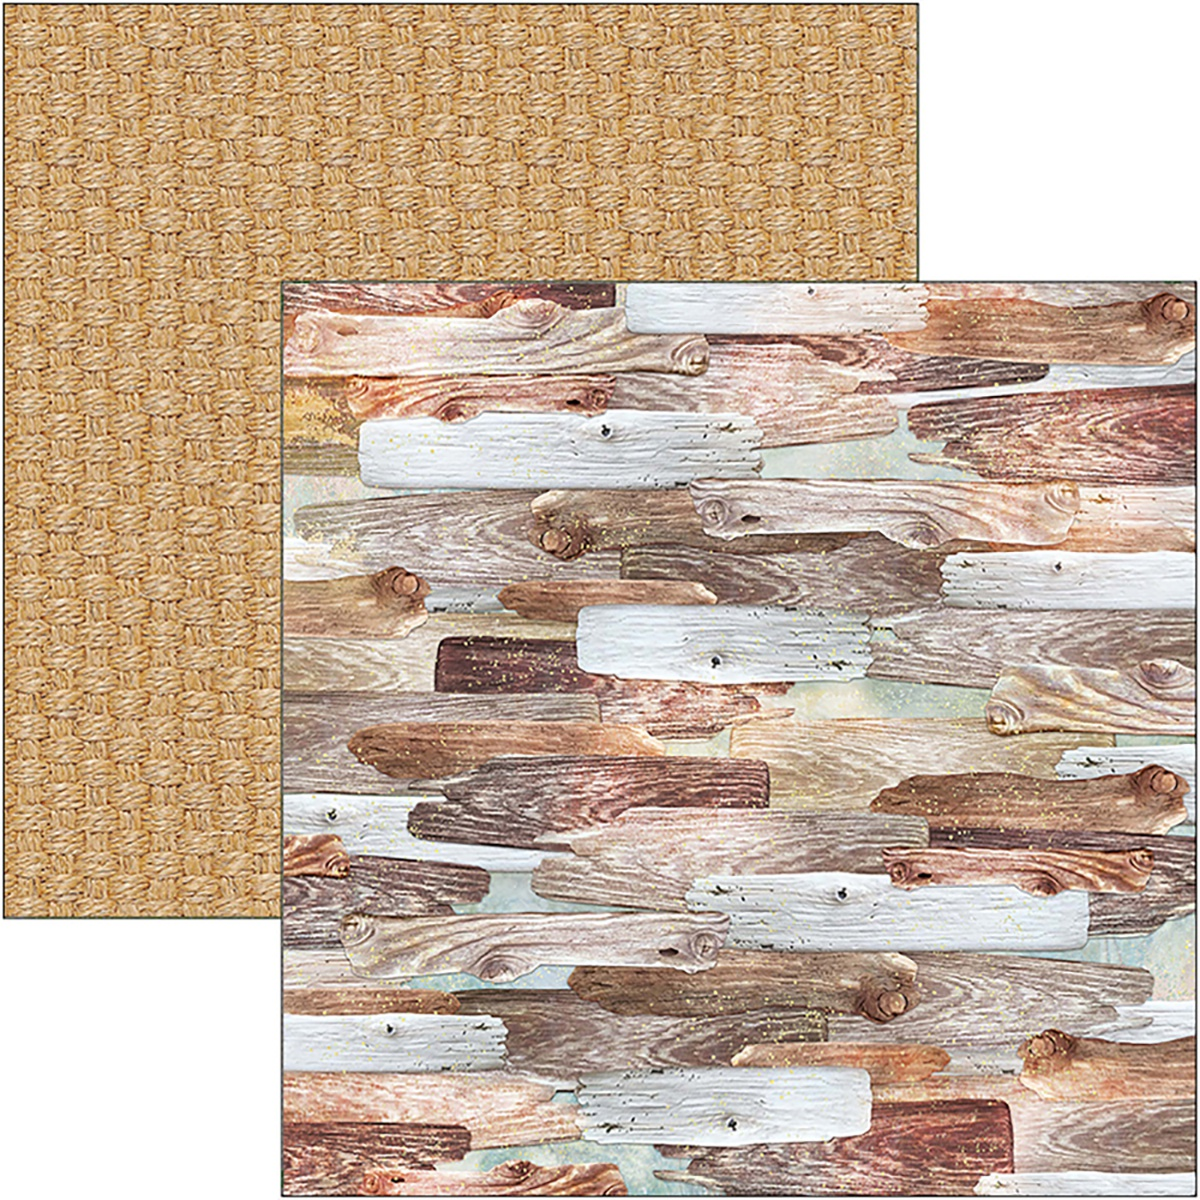 Ciao Bella Double-Sided Cardstock 90lb 12X12-River Wood & Seagrass, Delta